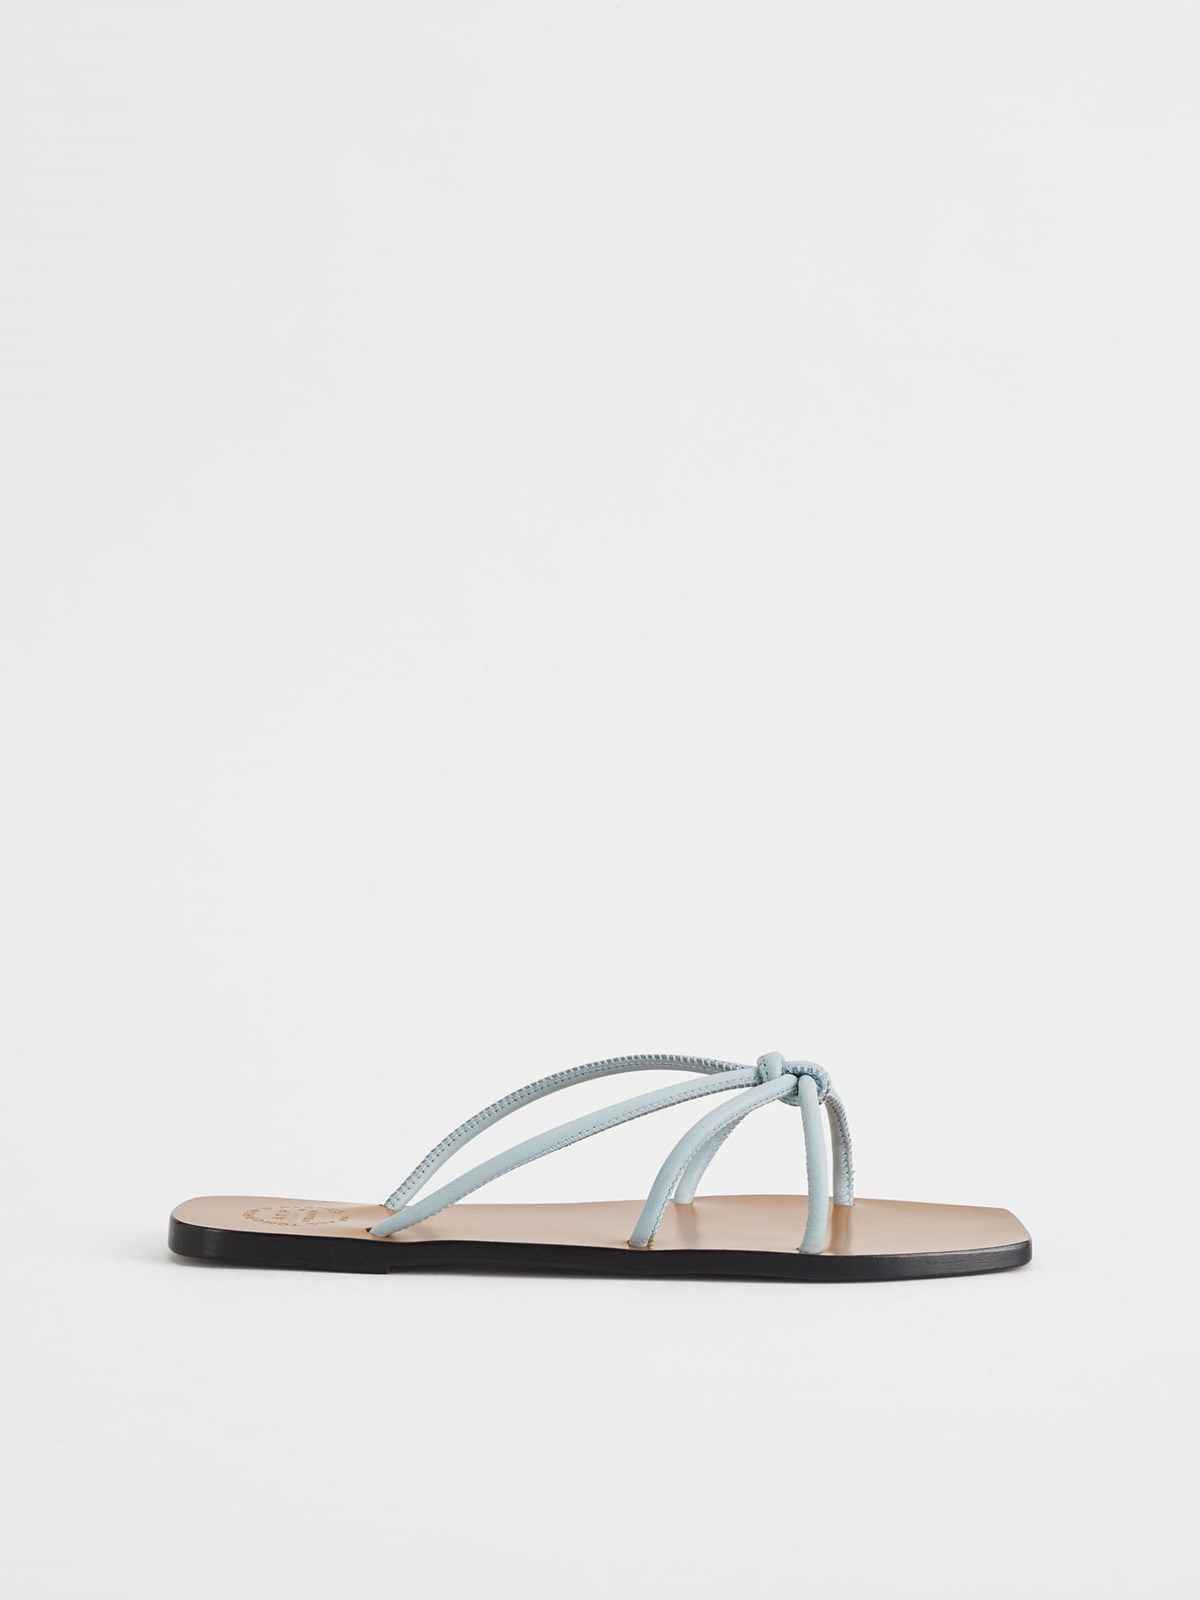 Panni Light Blue Flat sandals